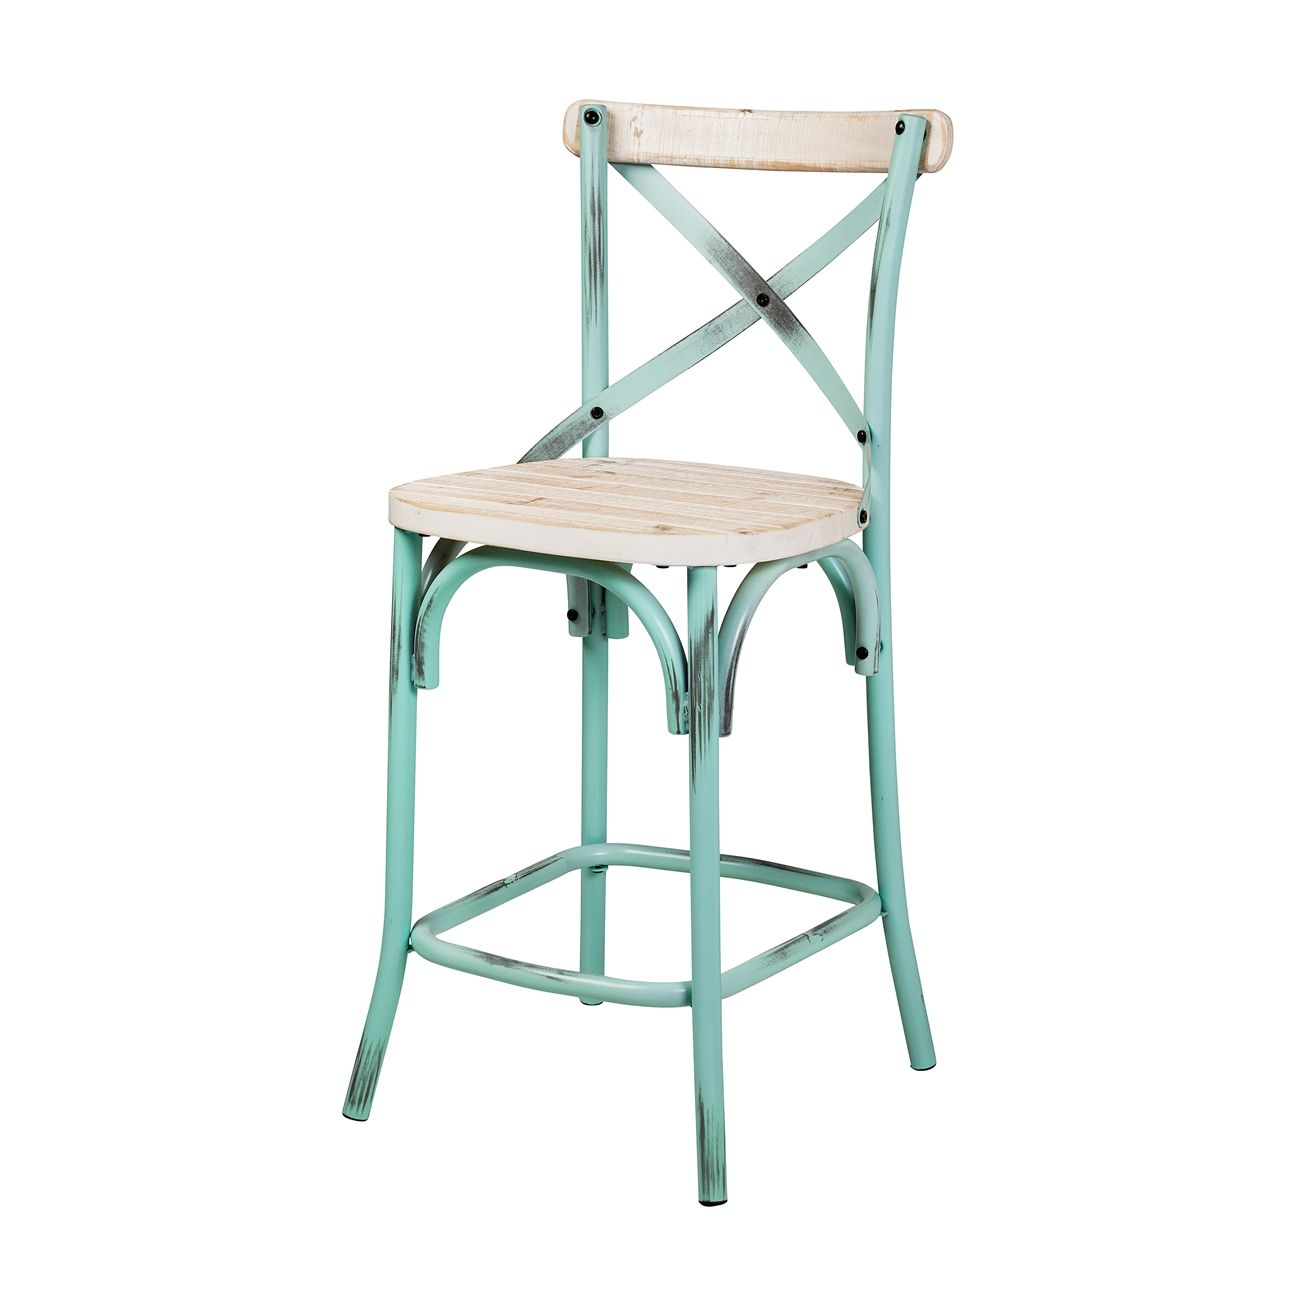 Rustic White Washed Reclaimed Pine Crossback Counter Stool The